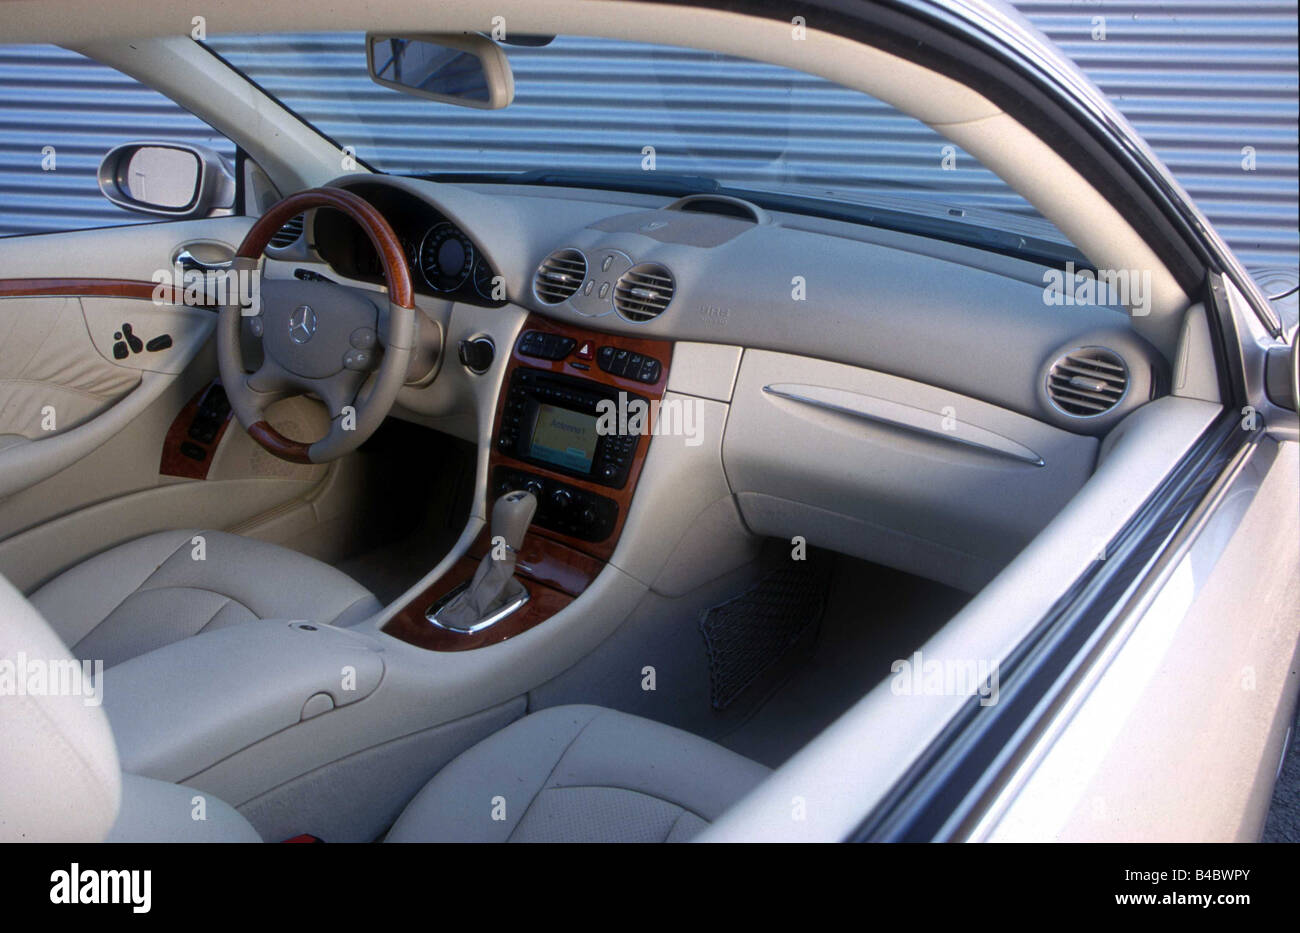 car mercedes clk 270 cdi coupe roadster model year 2002 silver stock photo royalty free. Black Bedroom Furniture Sets. Home Design Ideas